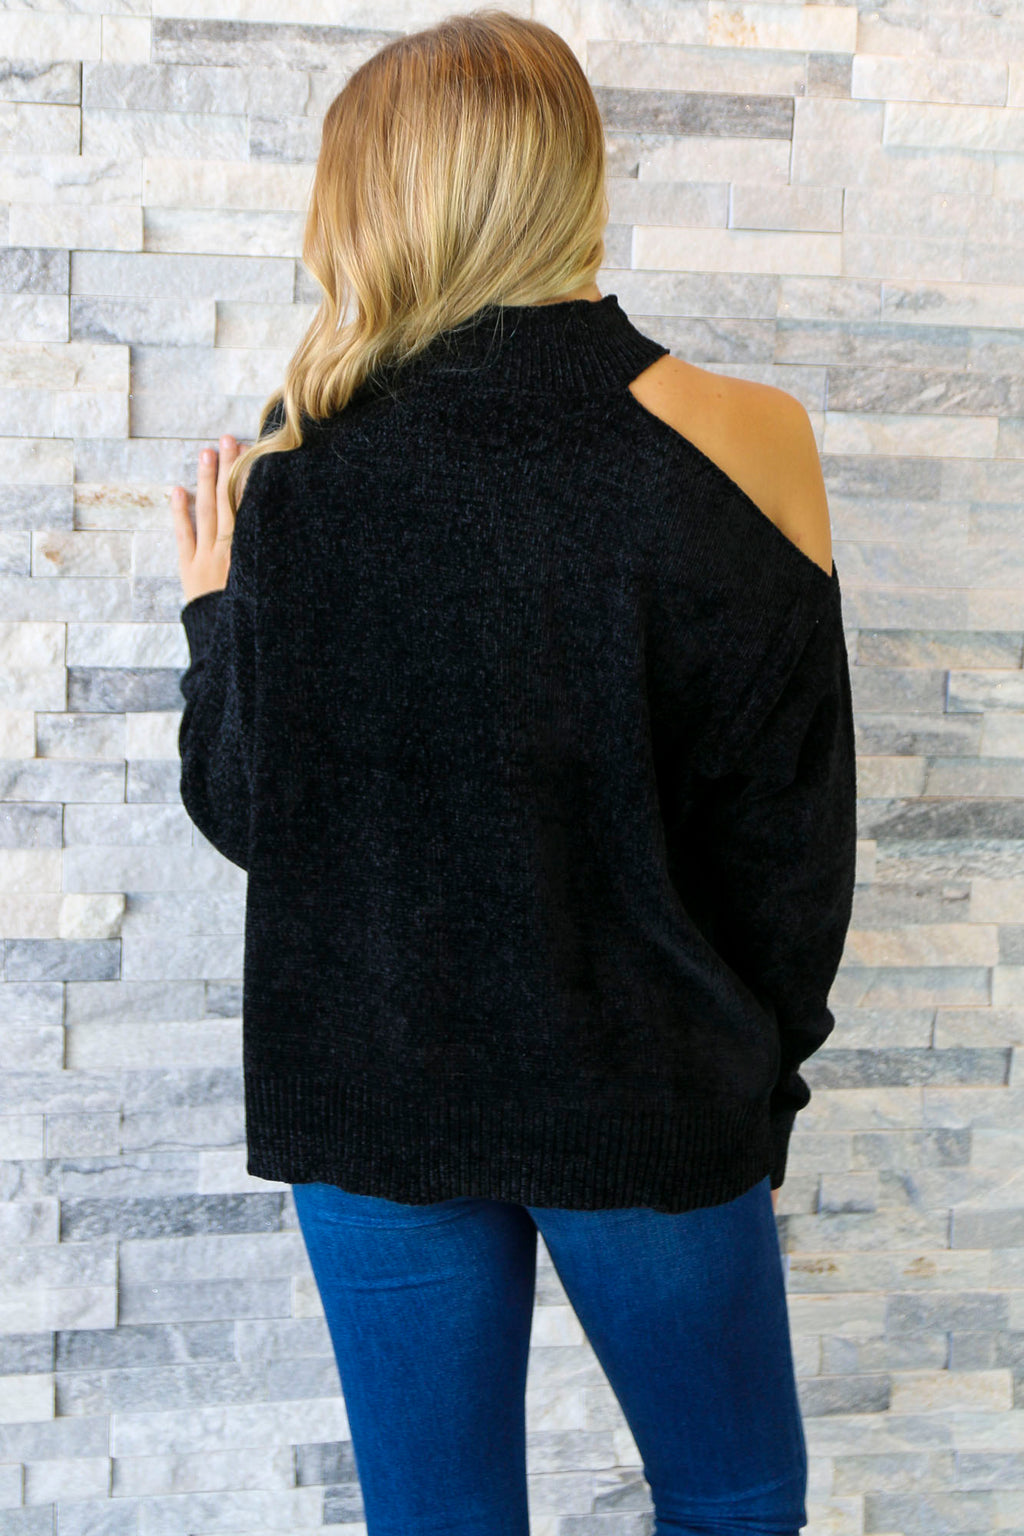 Evening Out - Cold Shoulder Sweater